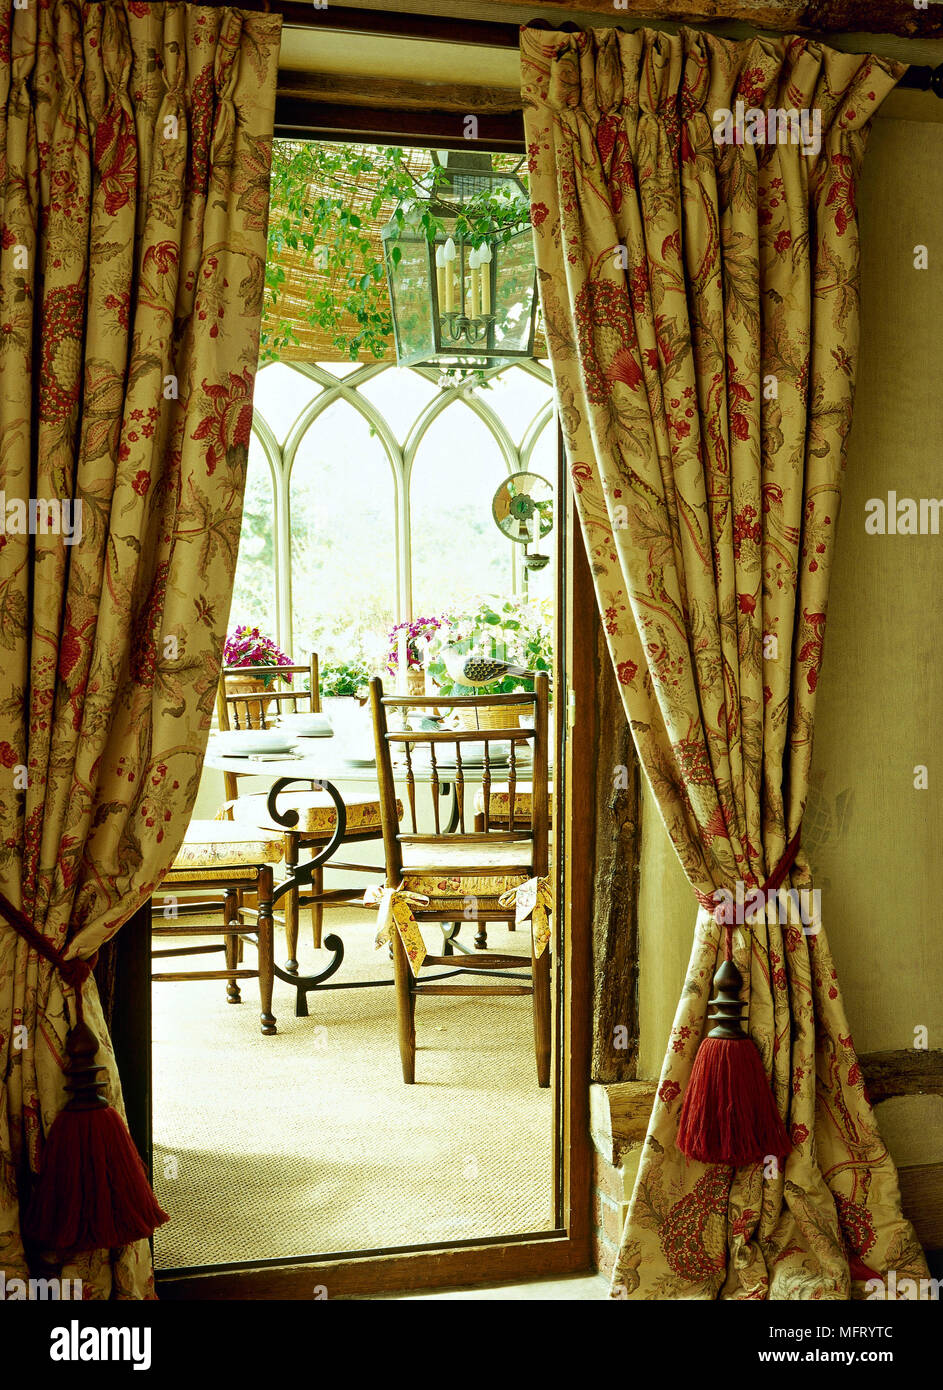 View Of Dining Room Through Door Curtains Wooden Chairs Set Table Lantern Light Windows Yellow Cushion Seats On Chairs Floral Pattern Curatins Either Stock Photo Alamy